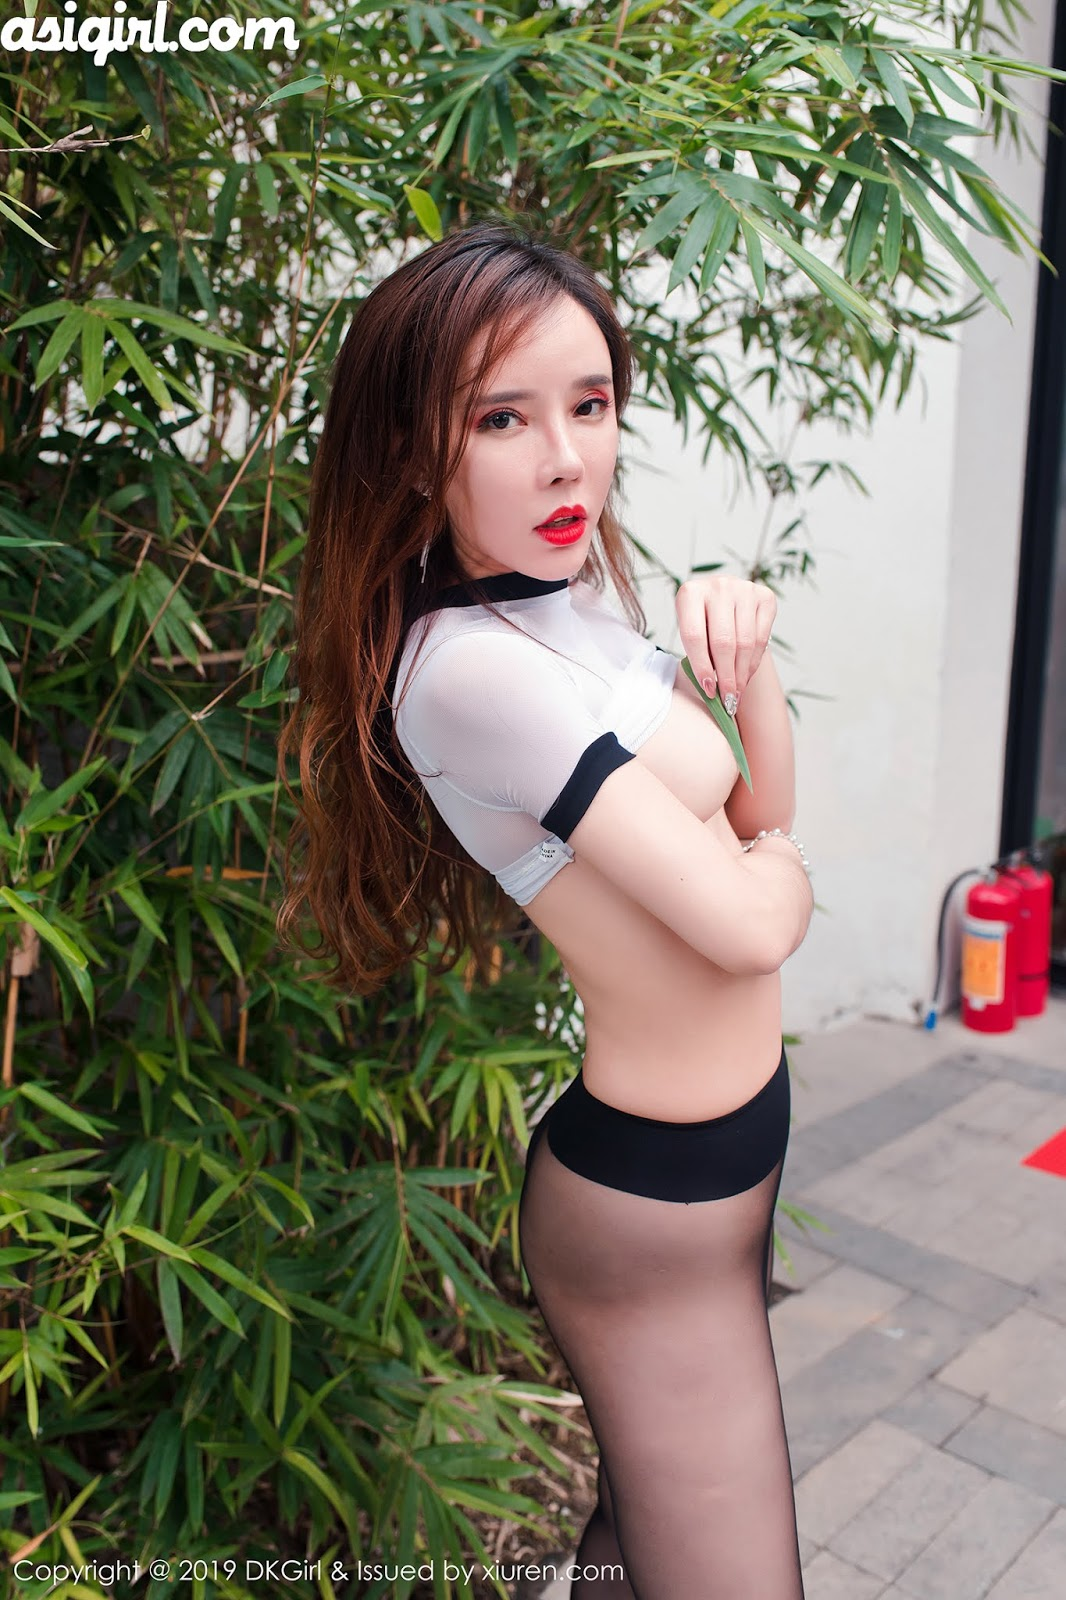 [DKGirl]VOL.102 - Asigirl.com - Download free high quality sexy stunning asian pictures